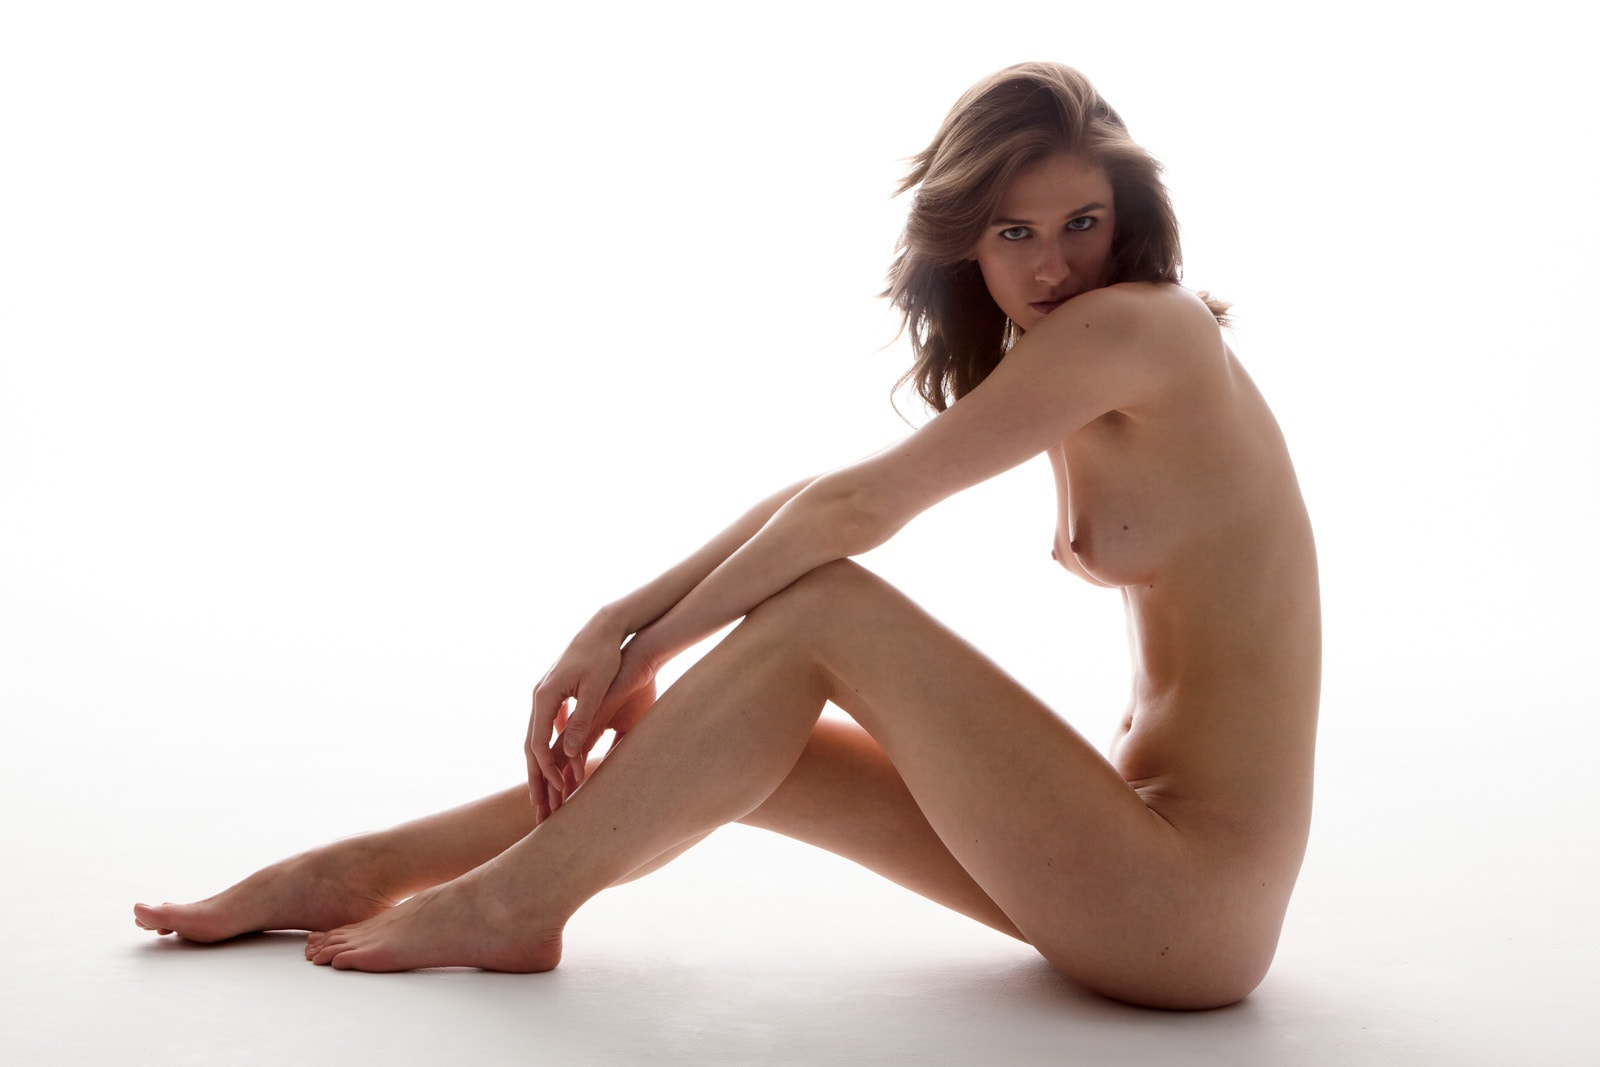 Picture: Grace modeling nude for Subtle Sensor Photography